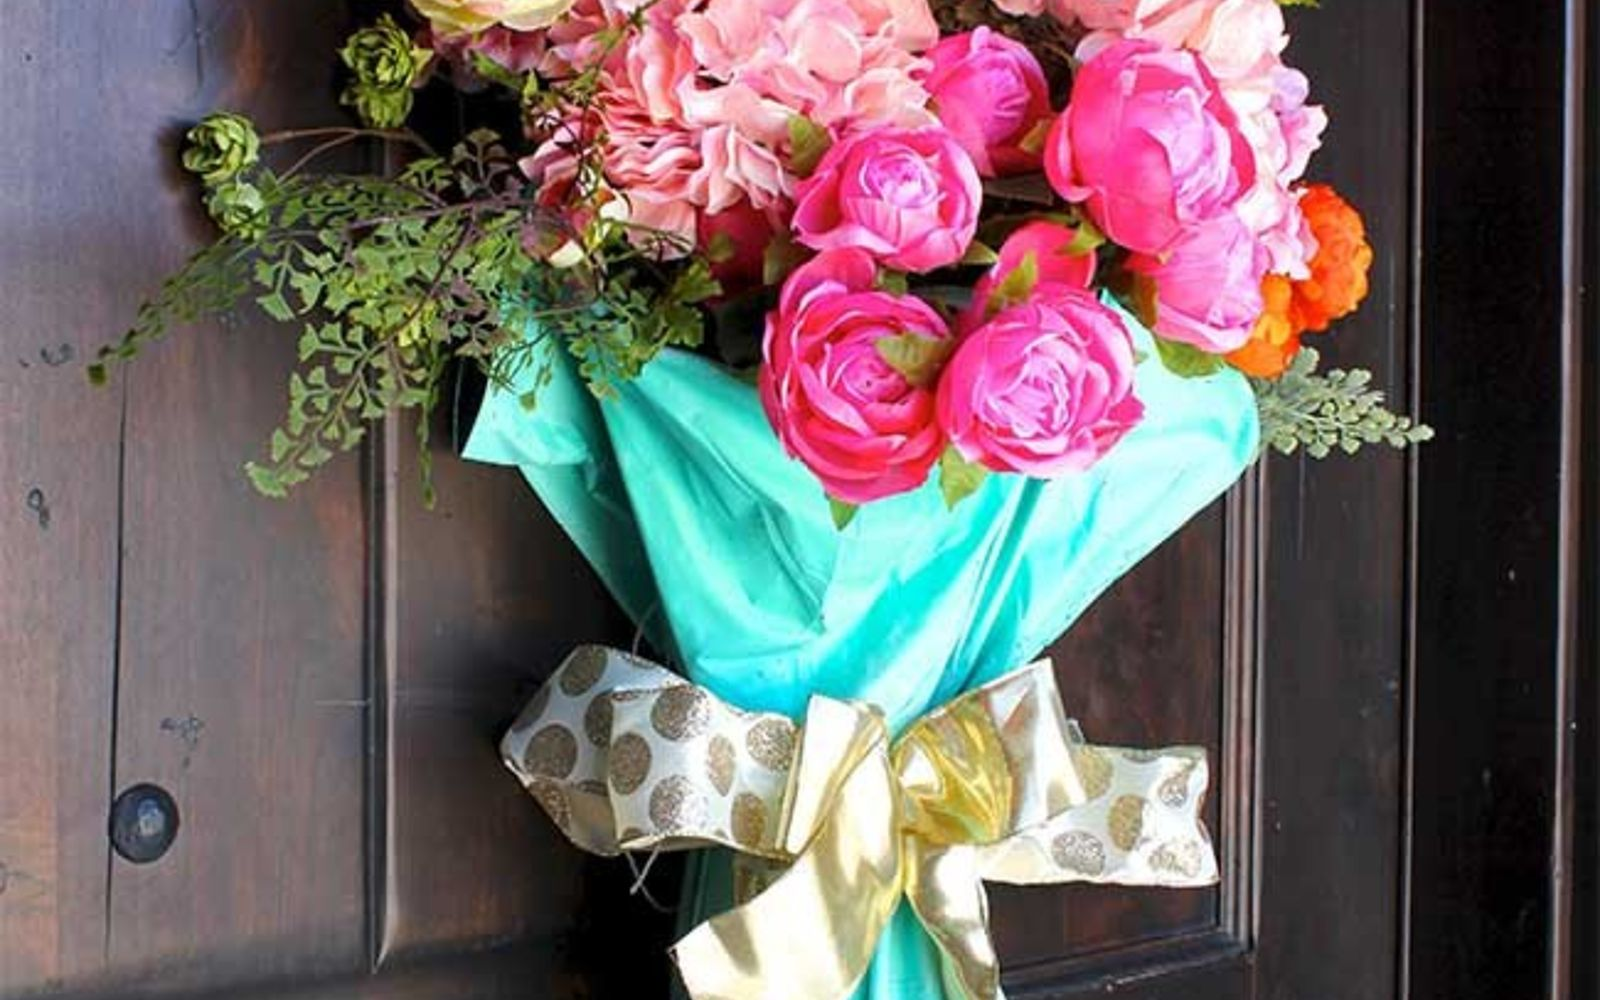 s 31 gorgeous spring wreaths that will make your neighbors smile, crafts, seasonal holiday decor, wreaths, Fill a broken umbrella with flowers